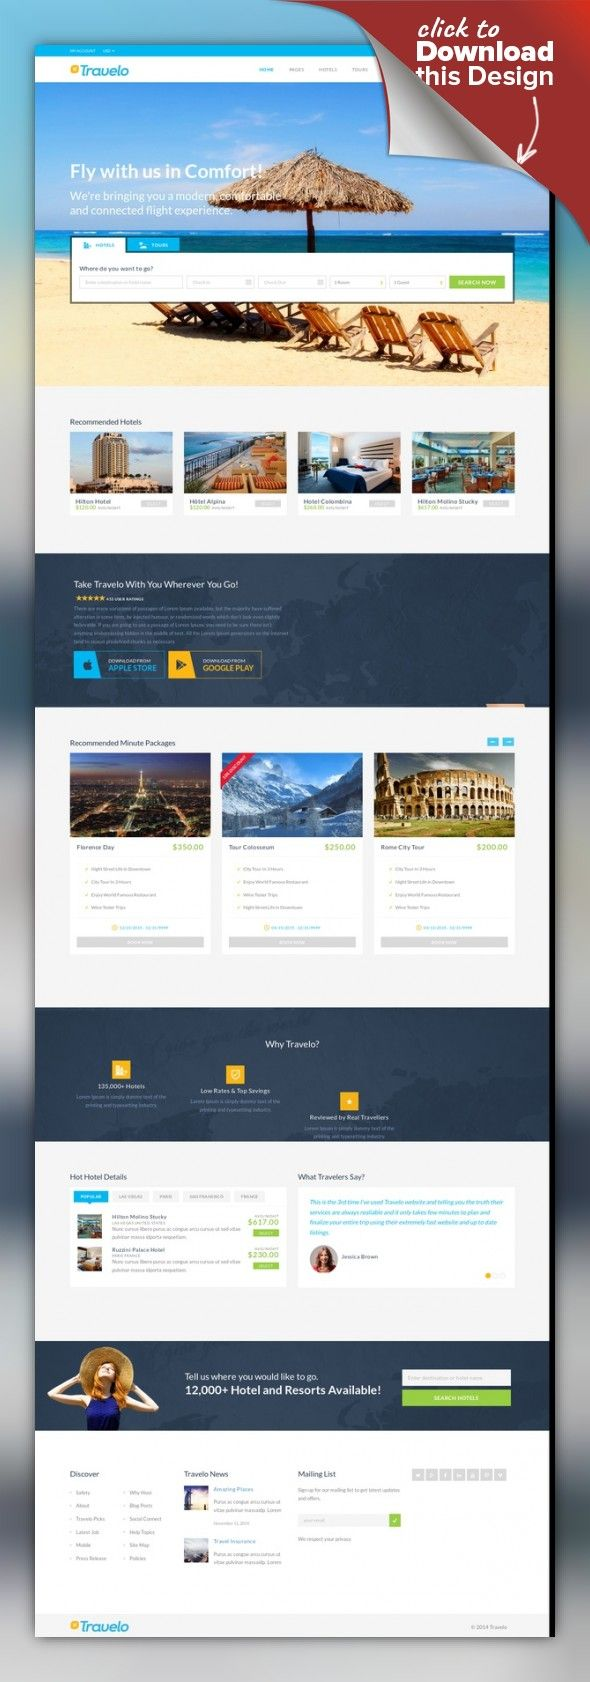 Travelo - Travel/Tour Booking WordPress Theme accommodation, accommodation booking, booking theme, holiday, hotel, hotel booking, multi language, reservation, responsive, rtl, tour, tour booking, travel, travel booking, wpml Travelo – Travel/Tour Booking Wordpress Theme is one of the best Hotel and Tour booking theme in the world. This theme has not only great skin and layout, but also wonderful booking module which allows you to use for any typ...